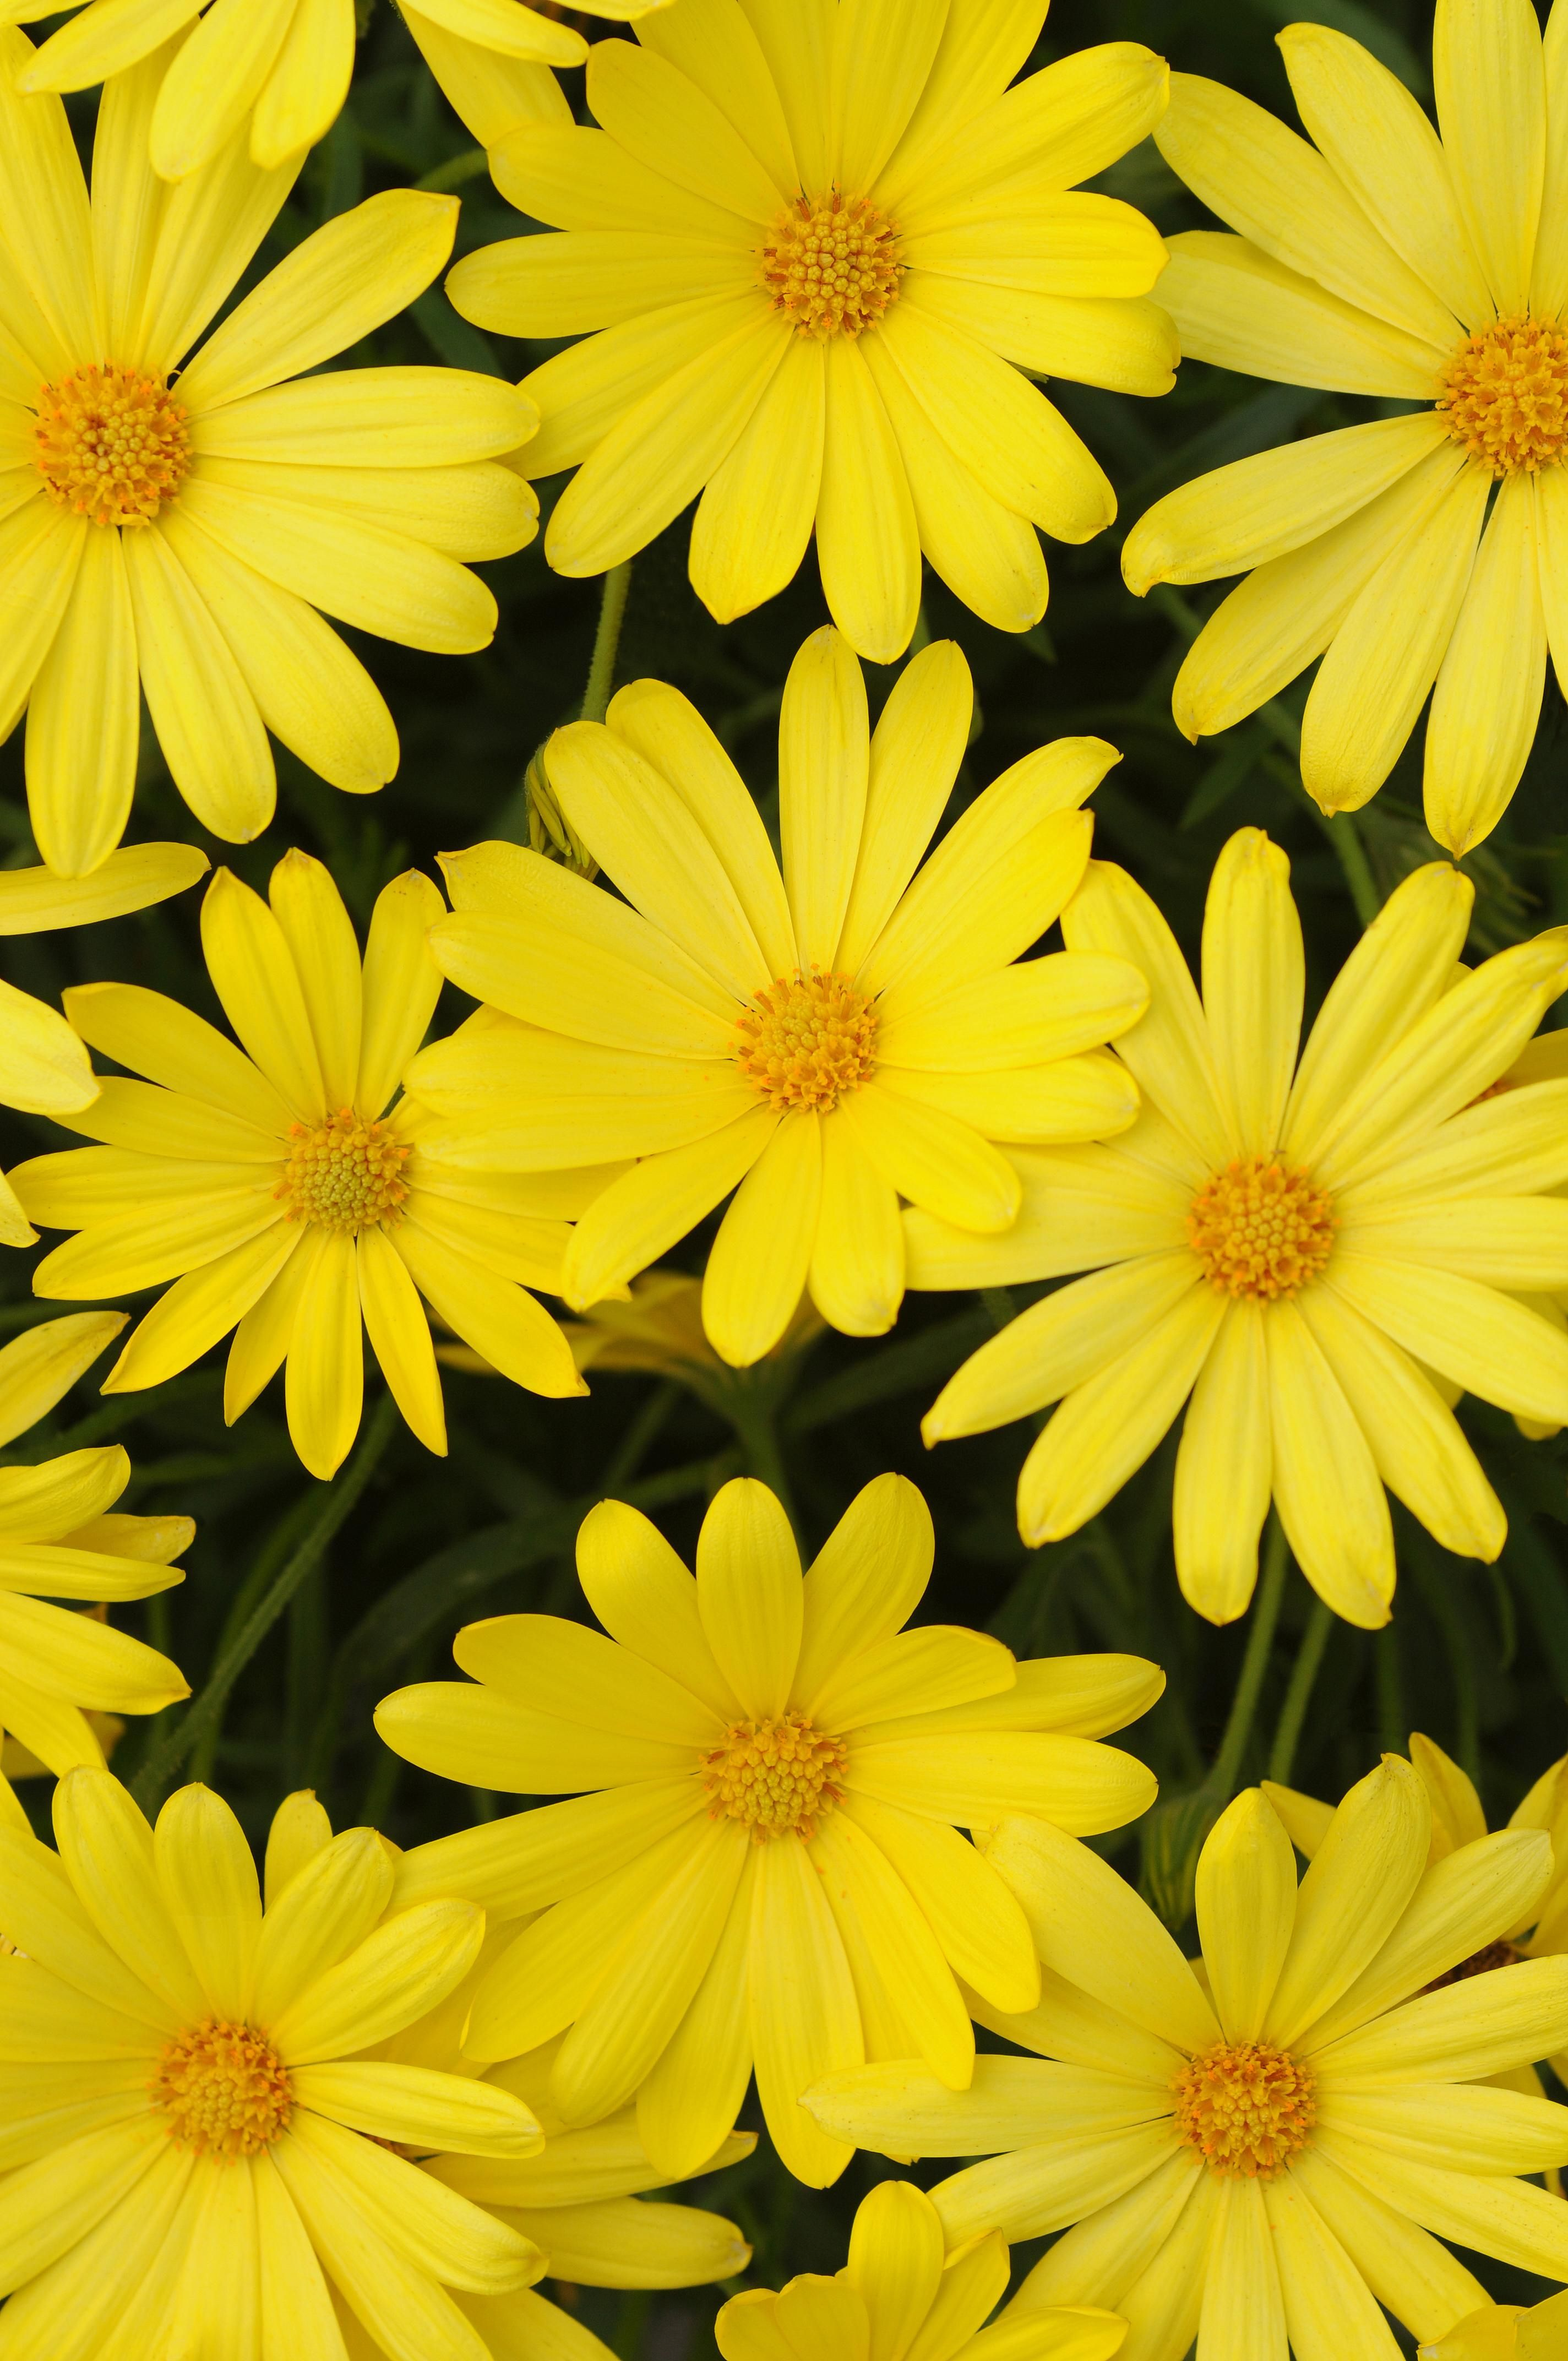 Osteospermum Voltage Yellow Ball Horticultural Co Spring 2014